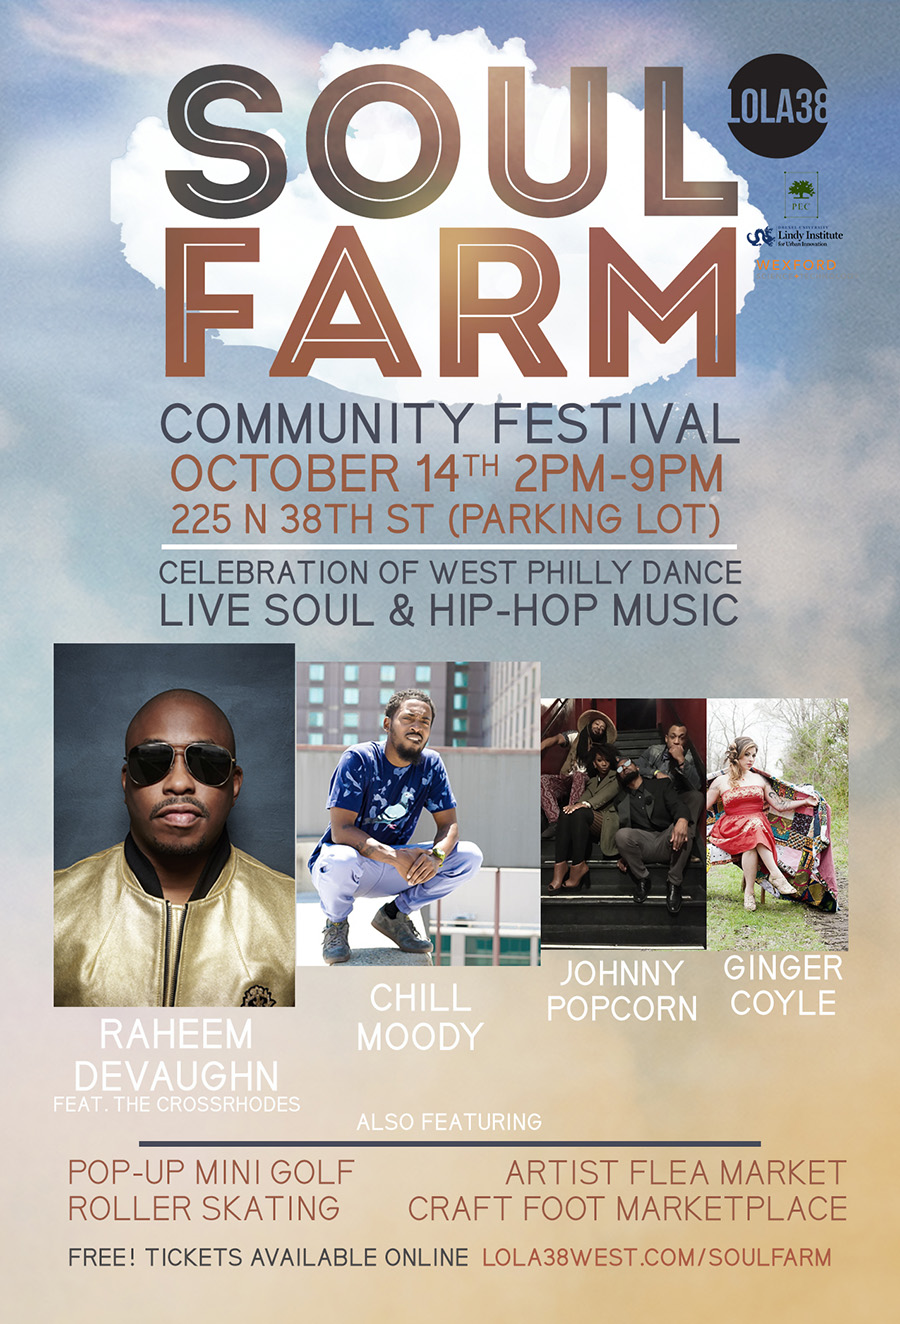 Saturday October 14th 2pm-9pm Soul Farm Community Festival 225 n 38th Street Raheem Devaughn x Chill Moody x Jonny Popcorn X Ginger Coyle - CLICK IMAGE TO REGISTER